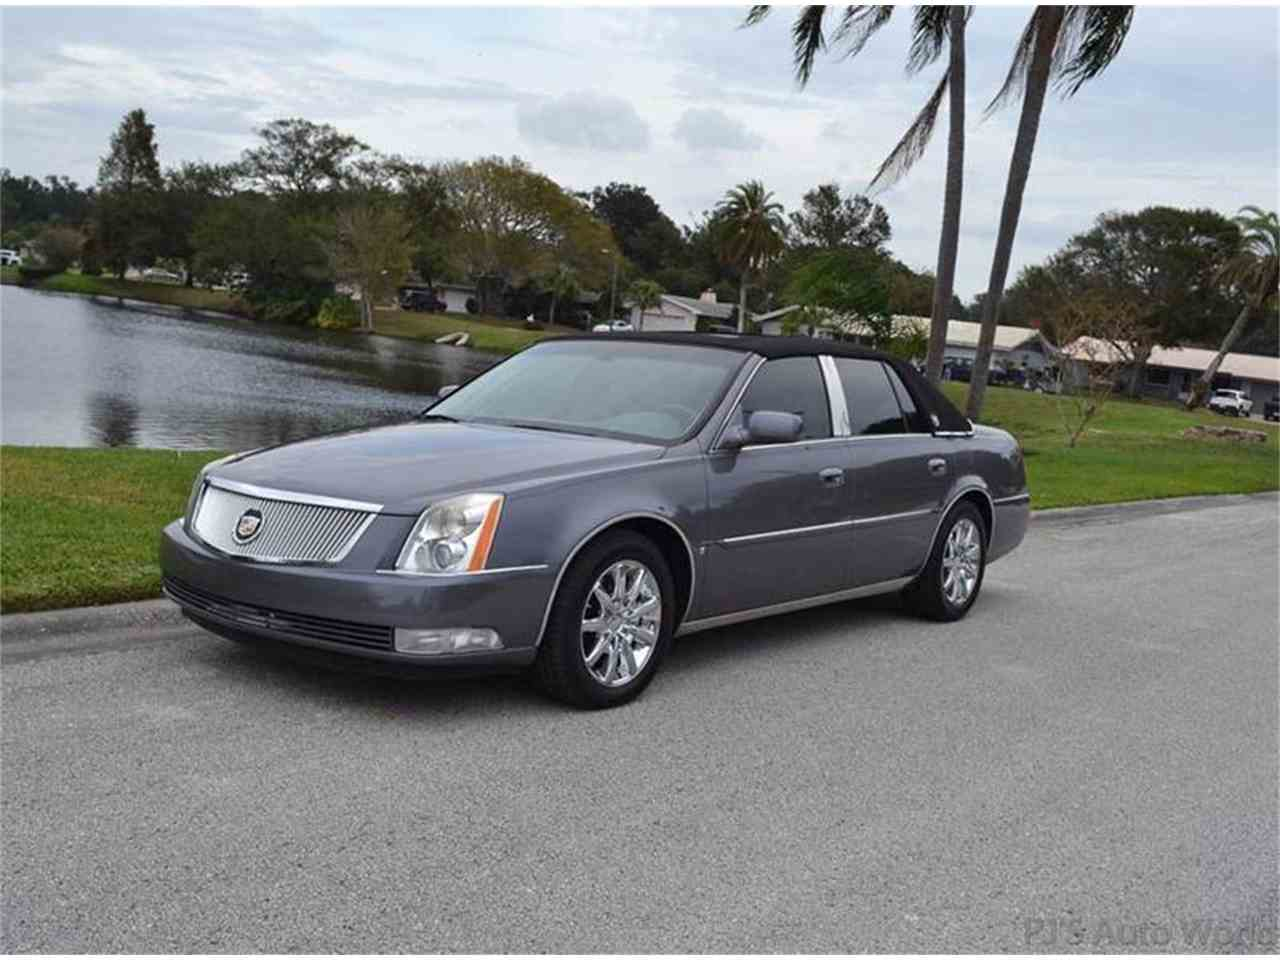 clean sale sedan cooled for dts vehicle loaded miles cadillac low seats htd lthr photo details